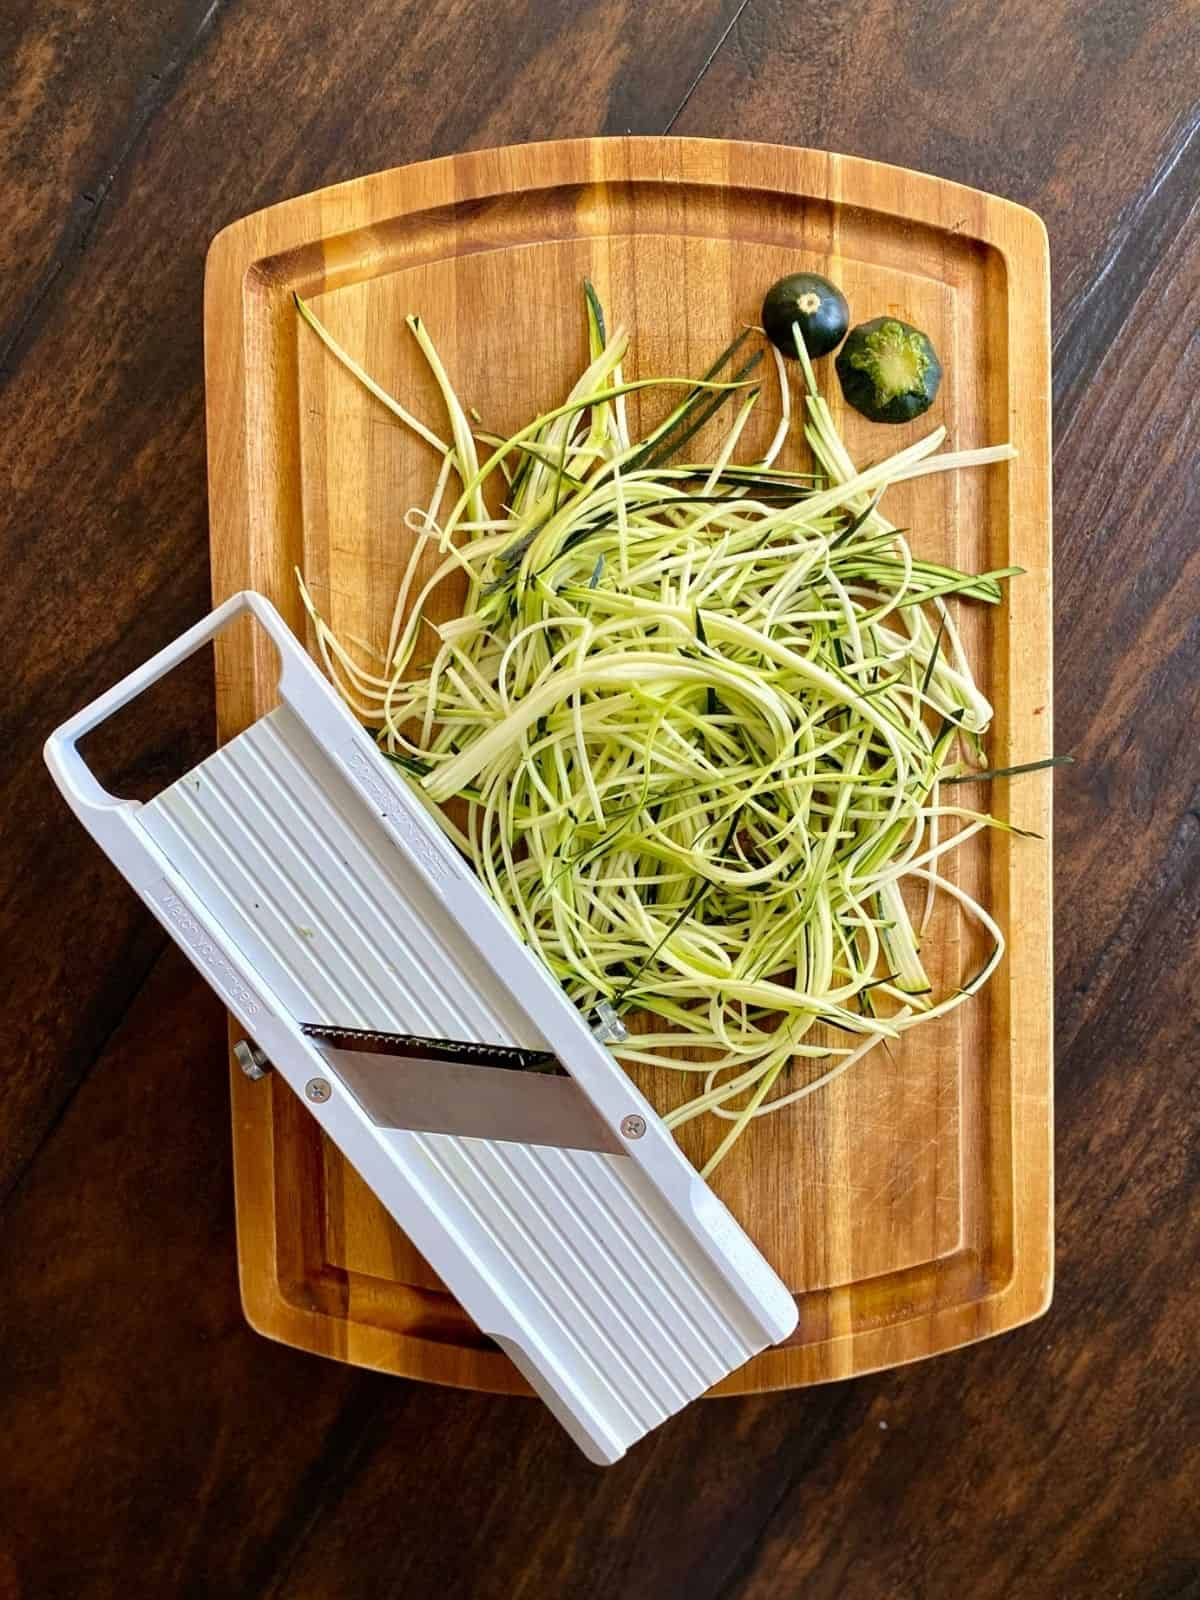 wood cutting board topped with julienned zucchini next to mandoline